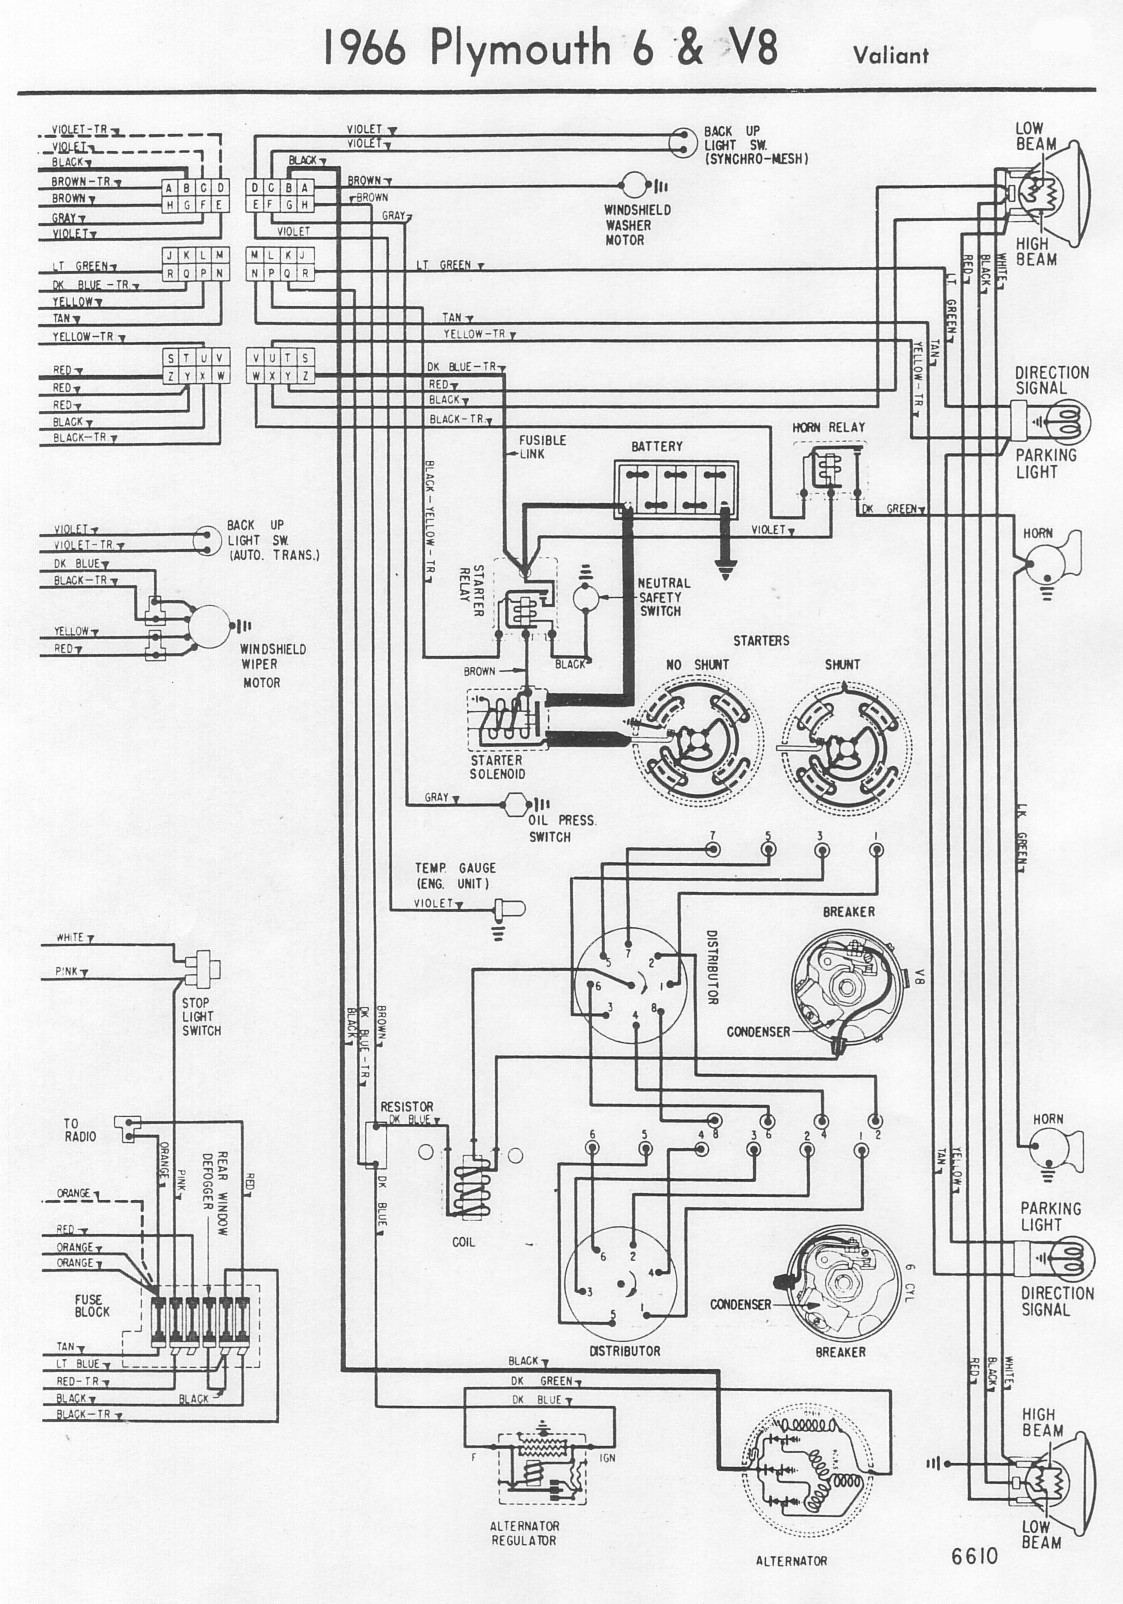 66ValiantB wiring diagrams 64 valiant wiring diagram at readyjetset.co